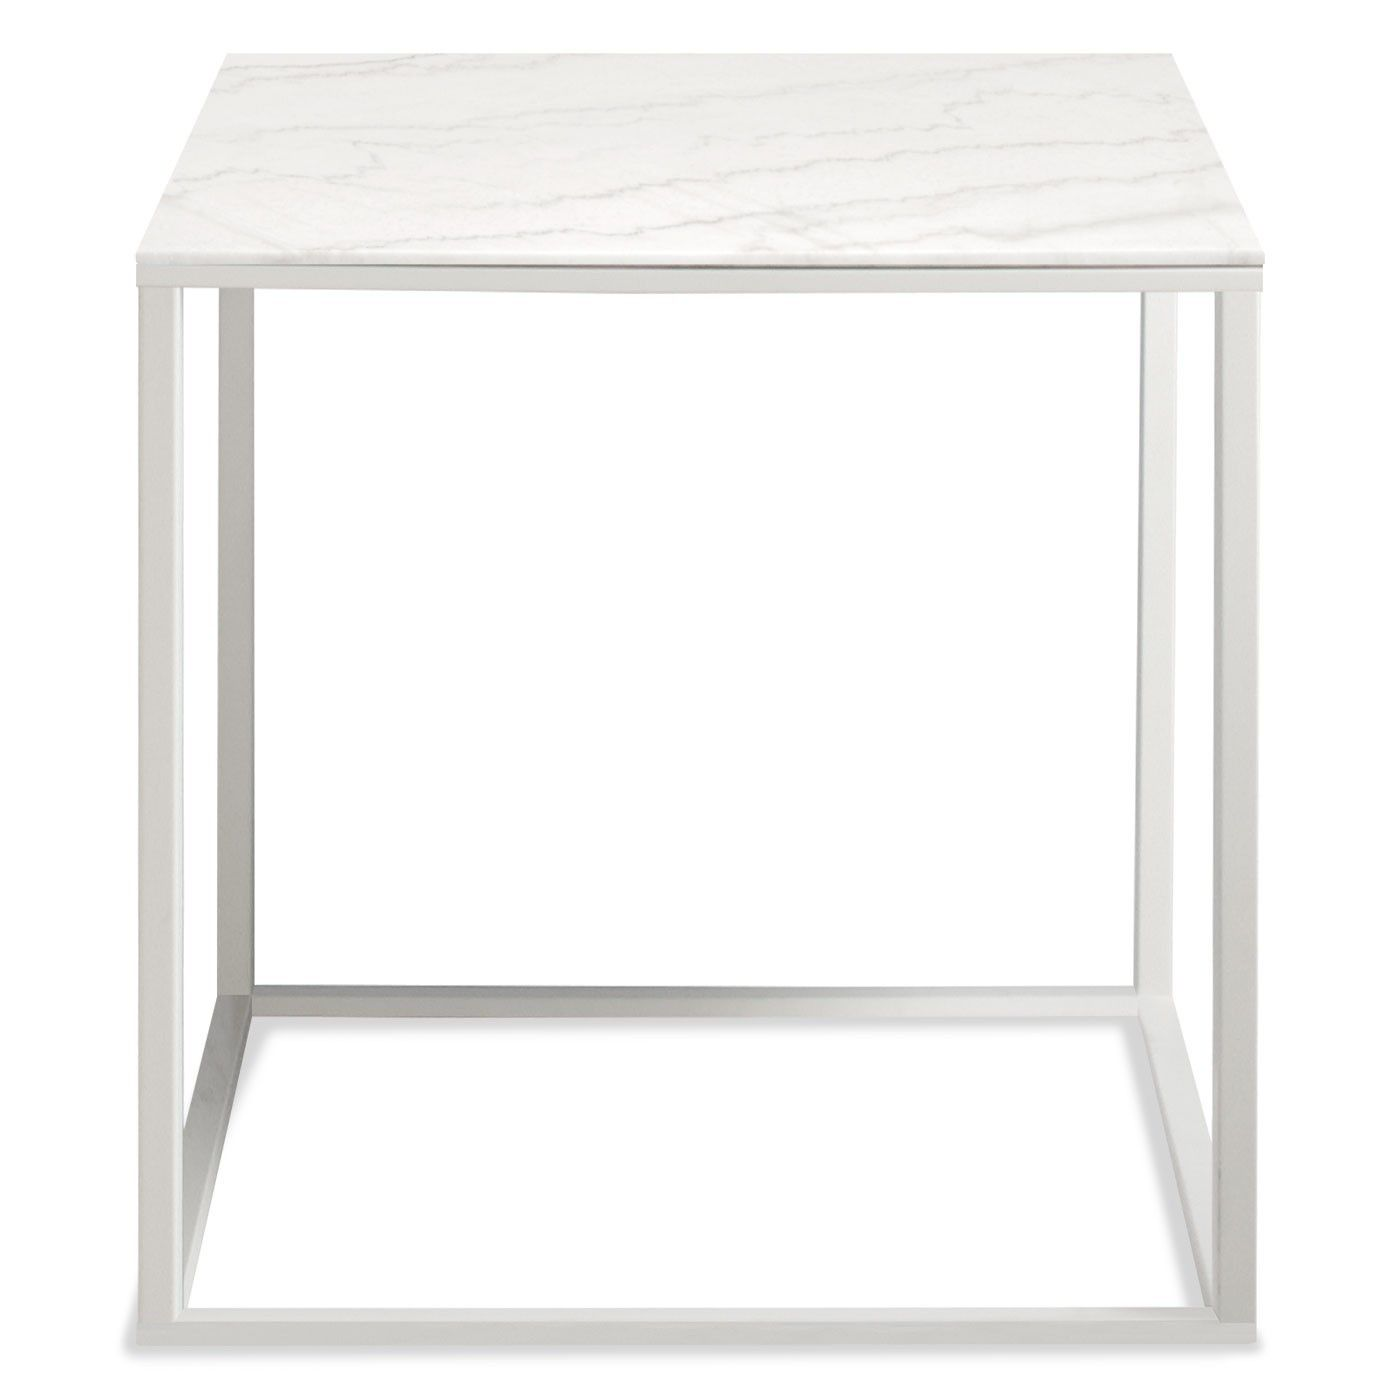 interior white marble side table Styling our home